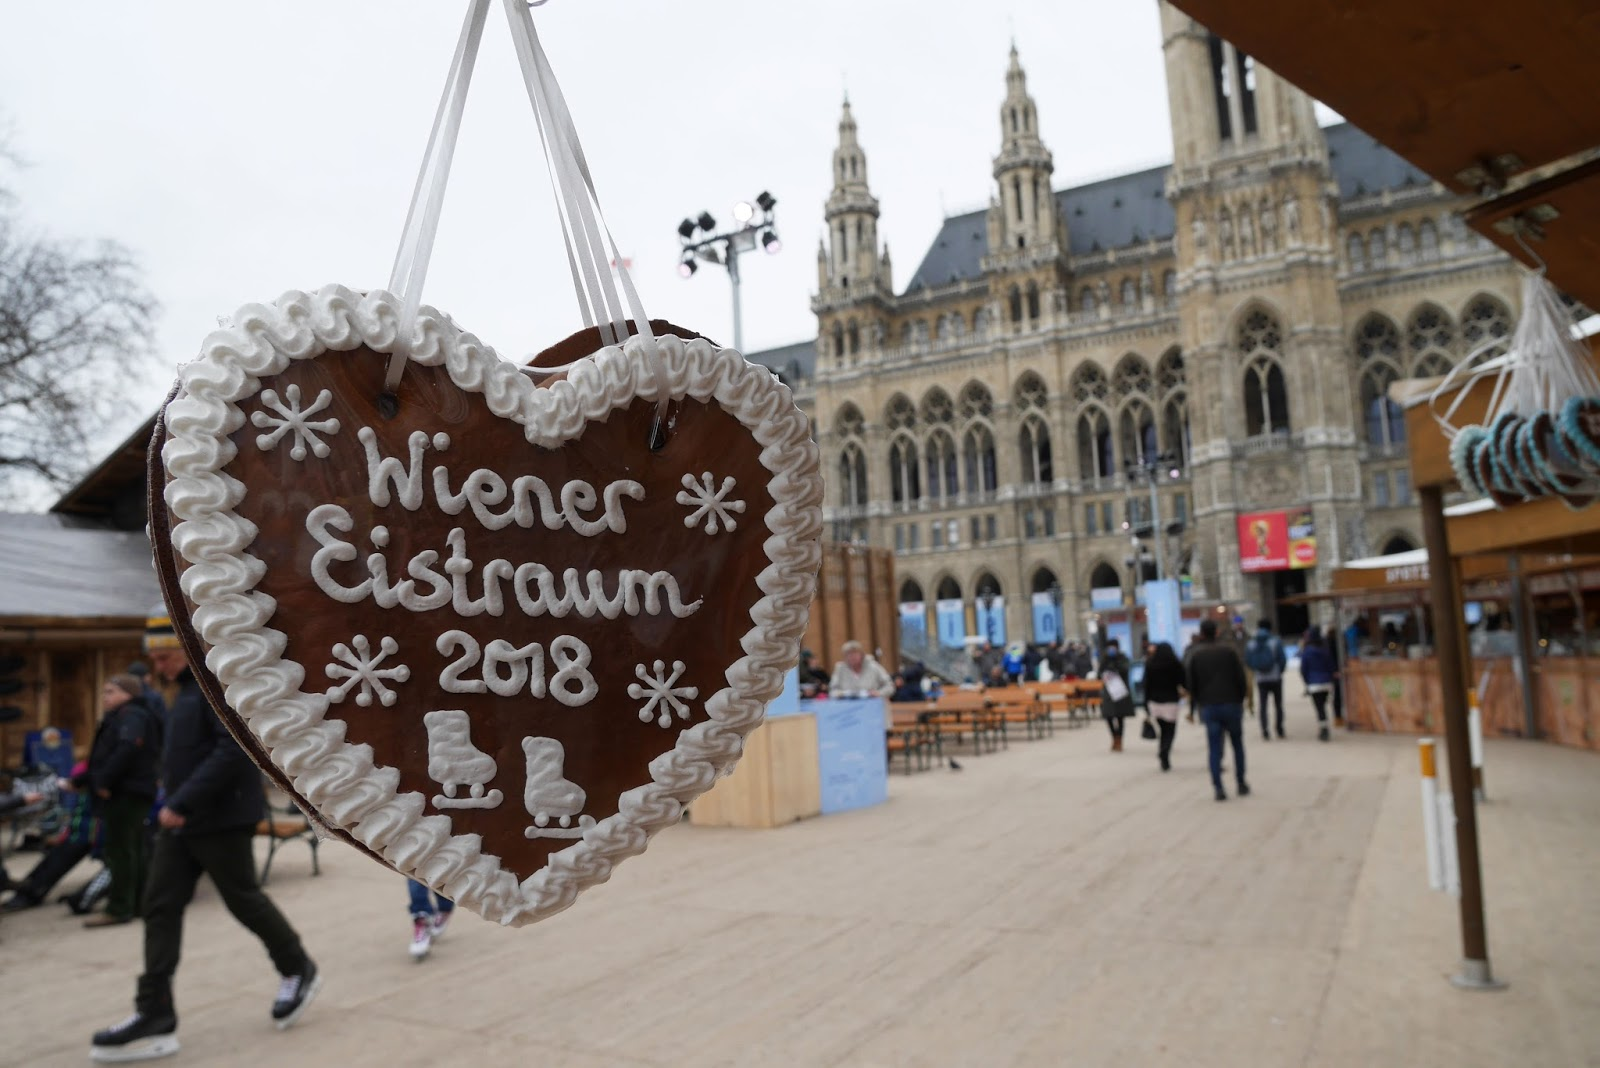 Vienna Winter Festival at the Rathaus (City Hall)